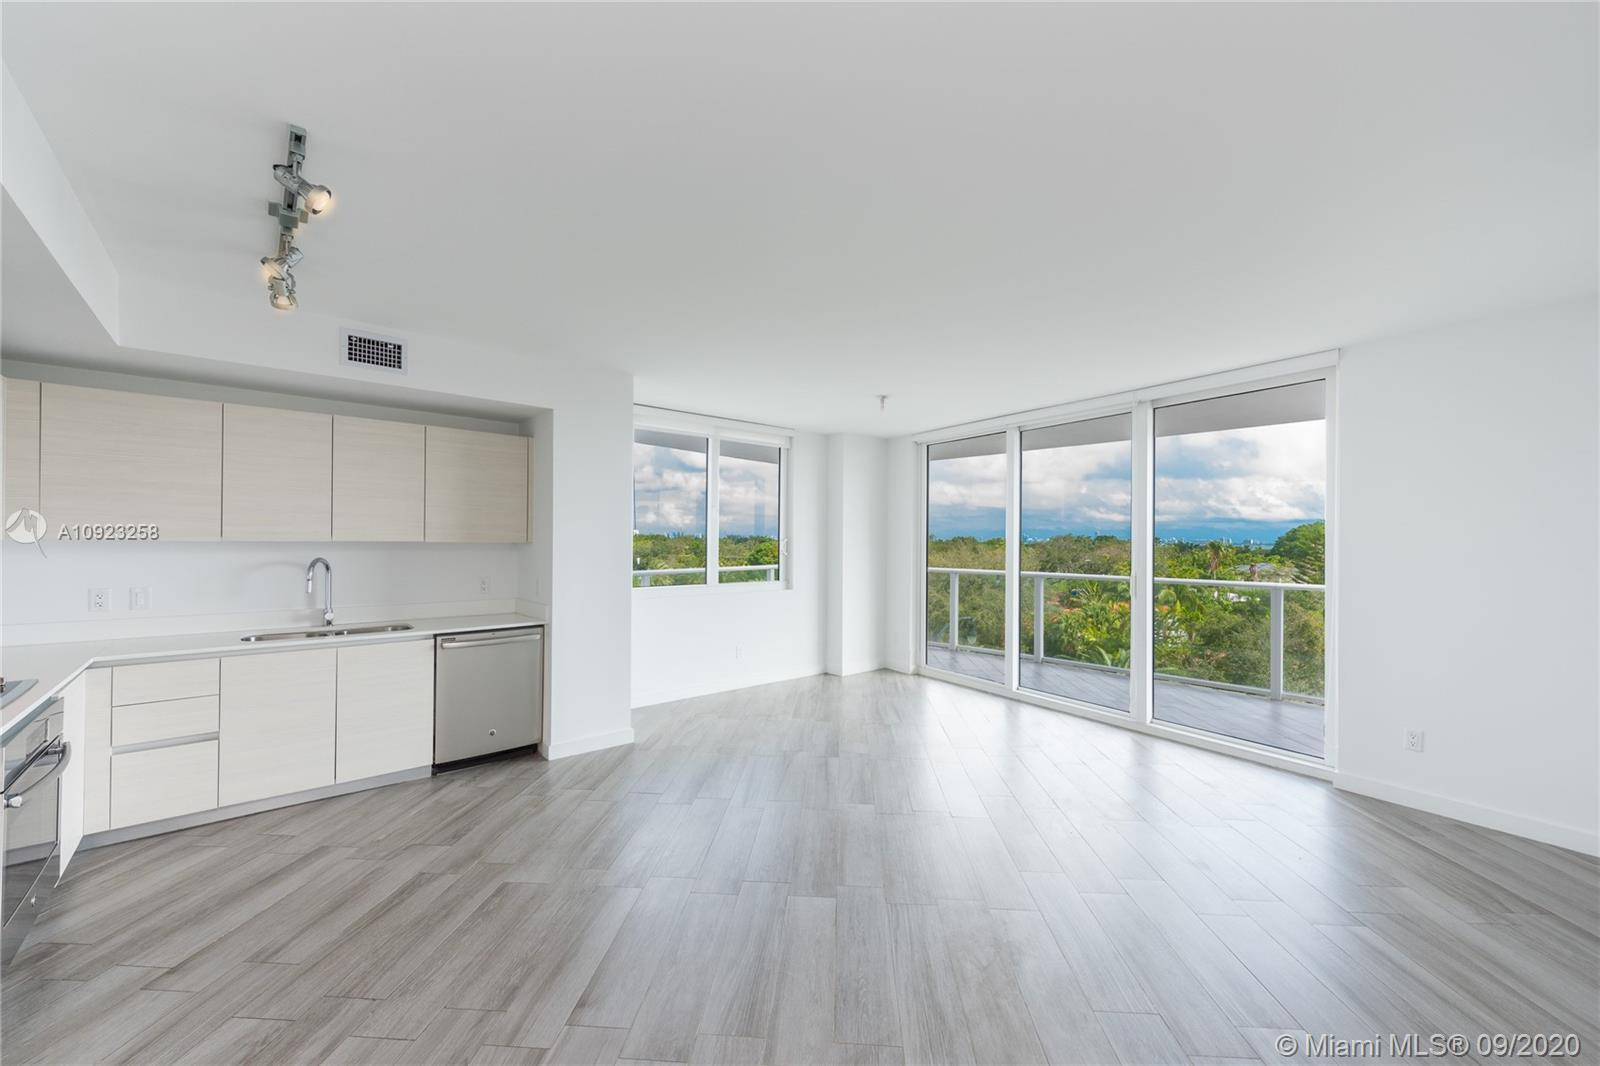 Amazing building with the best amenities! 2 beds 2 baths with a great open view. Big Balcony. Parkin